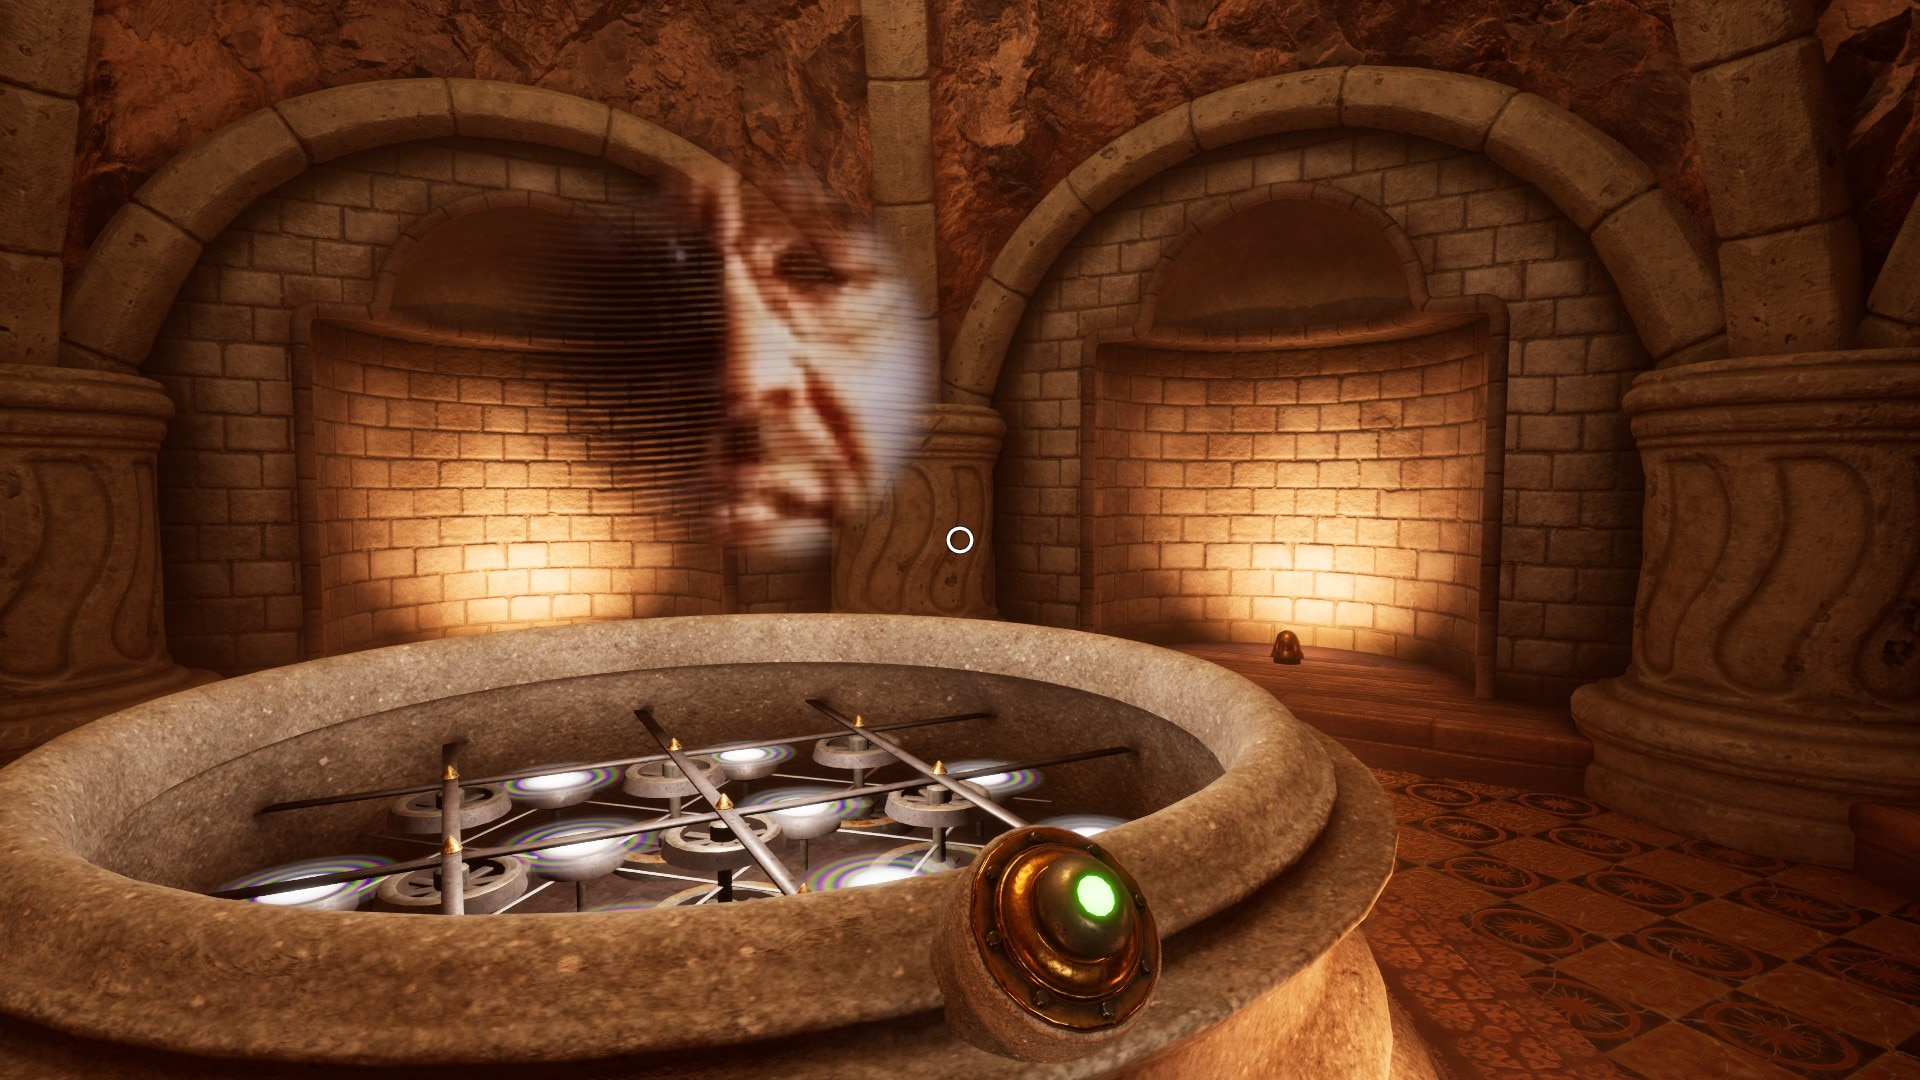 An image from Myst 2021.